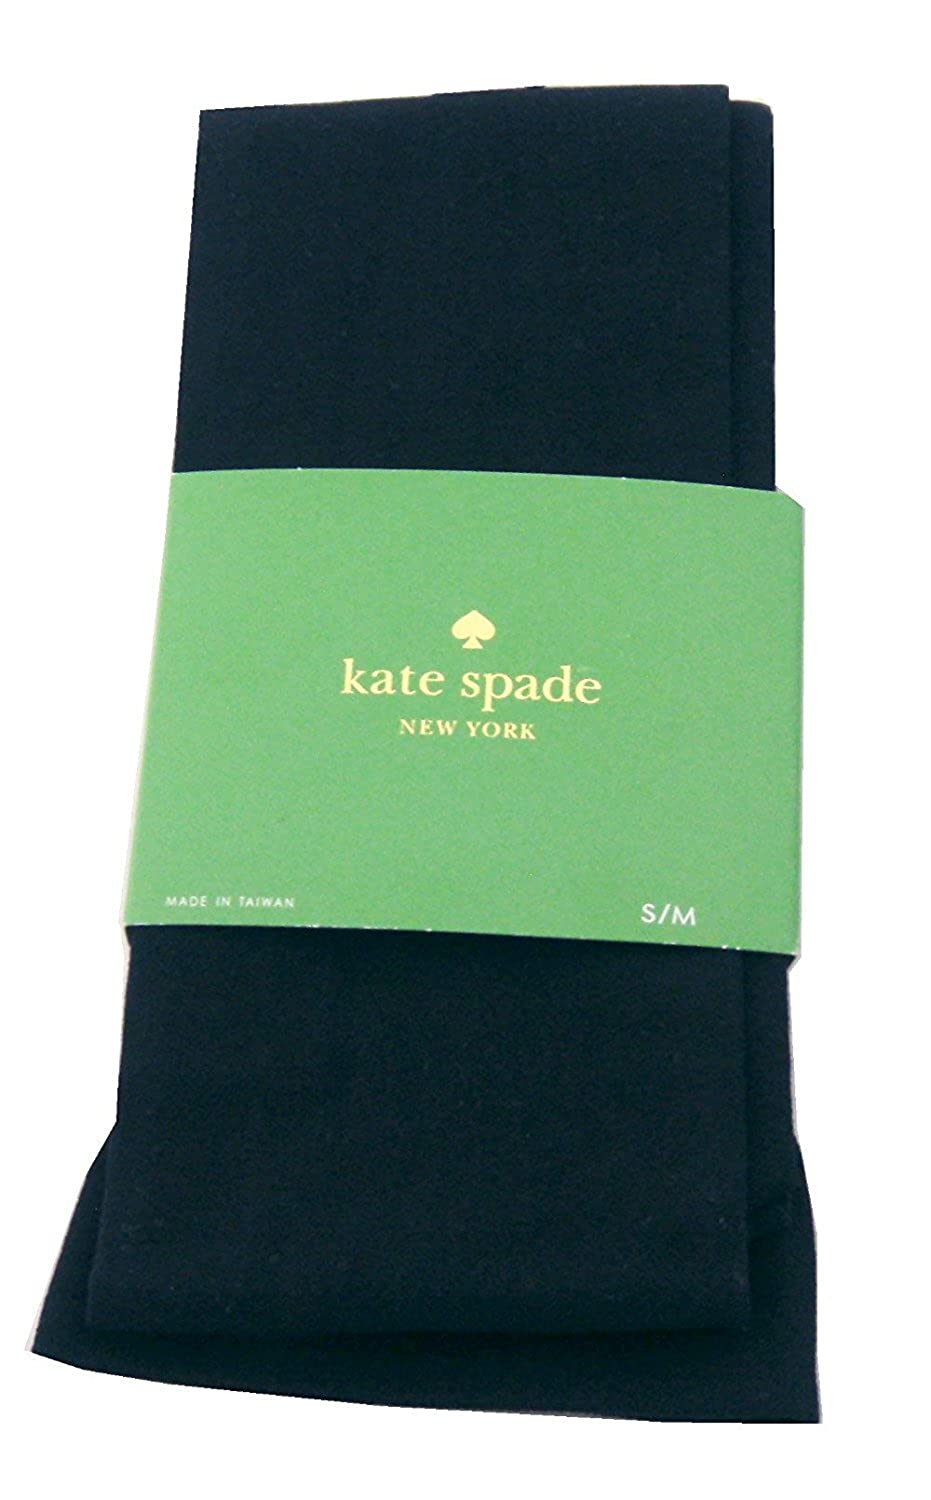 Kate Spade Women's Tights Kate Spade Women's Tights Black S/M